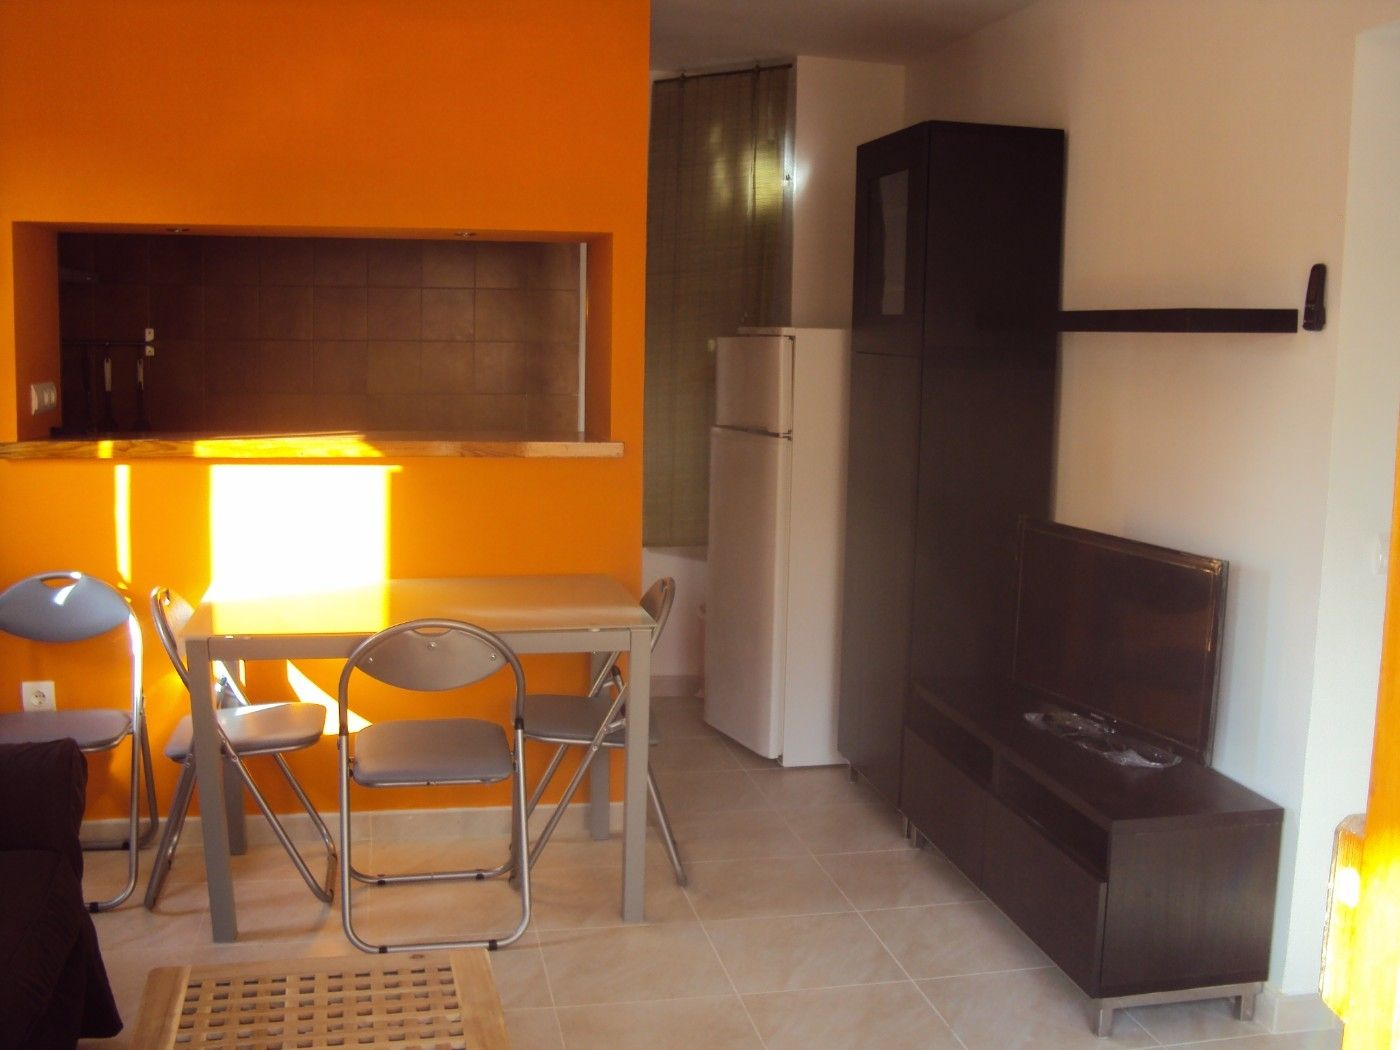 Rent Apartment in Carrer jose vargas ponce, 2. Alquiler anual ibiza_den bossa